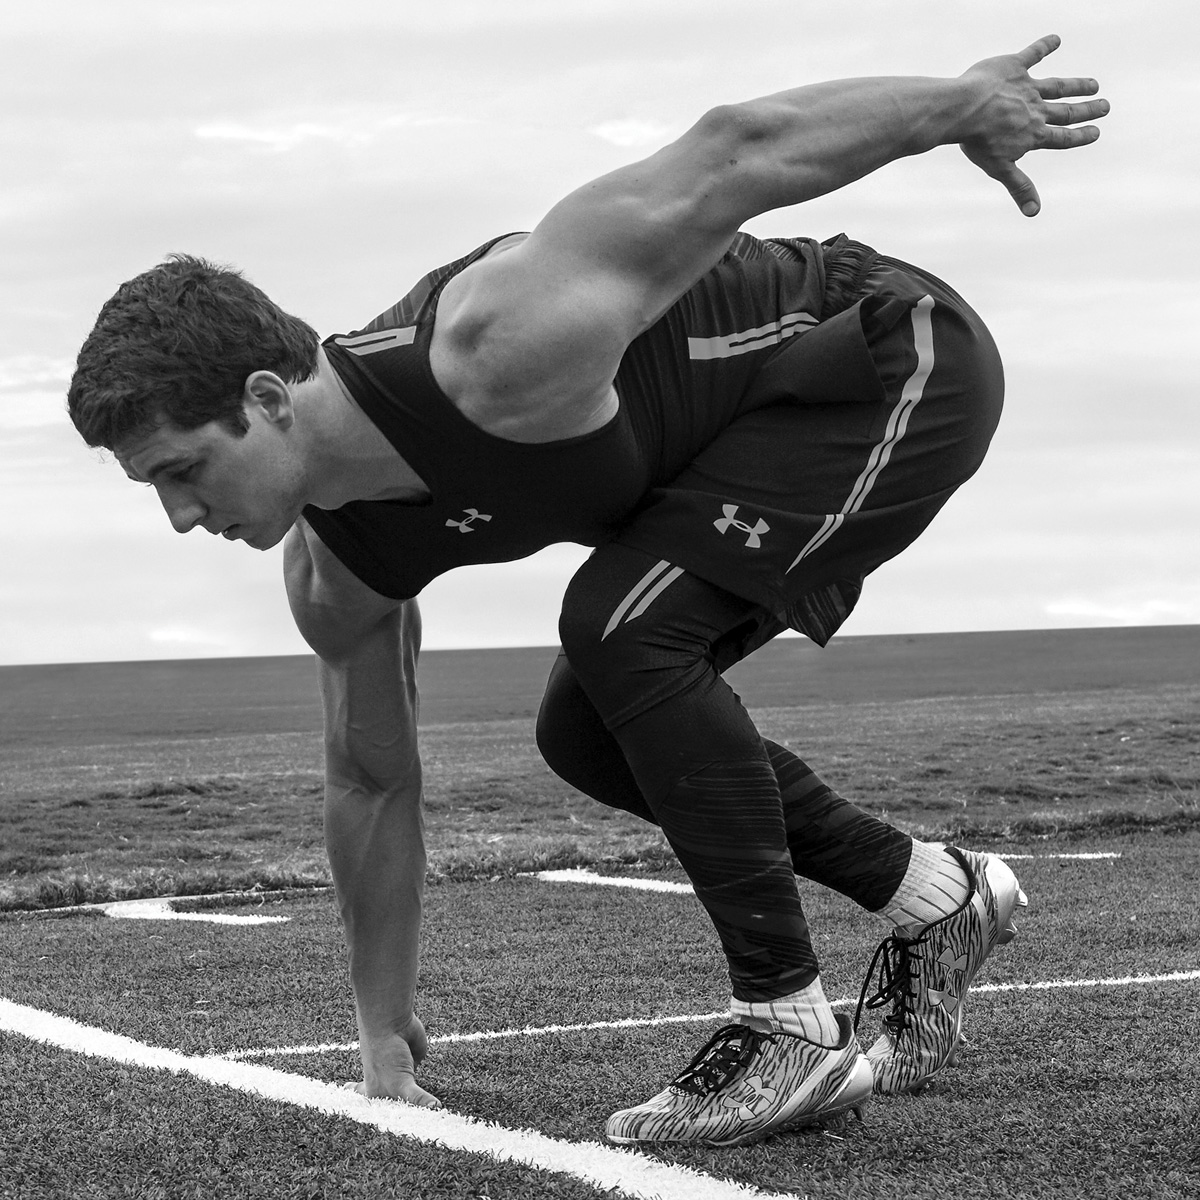 Under Armour NFL Combine Training Gear: Built For The Biggest Workouts